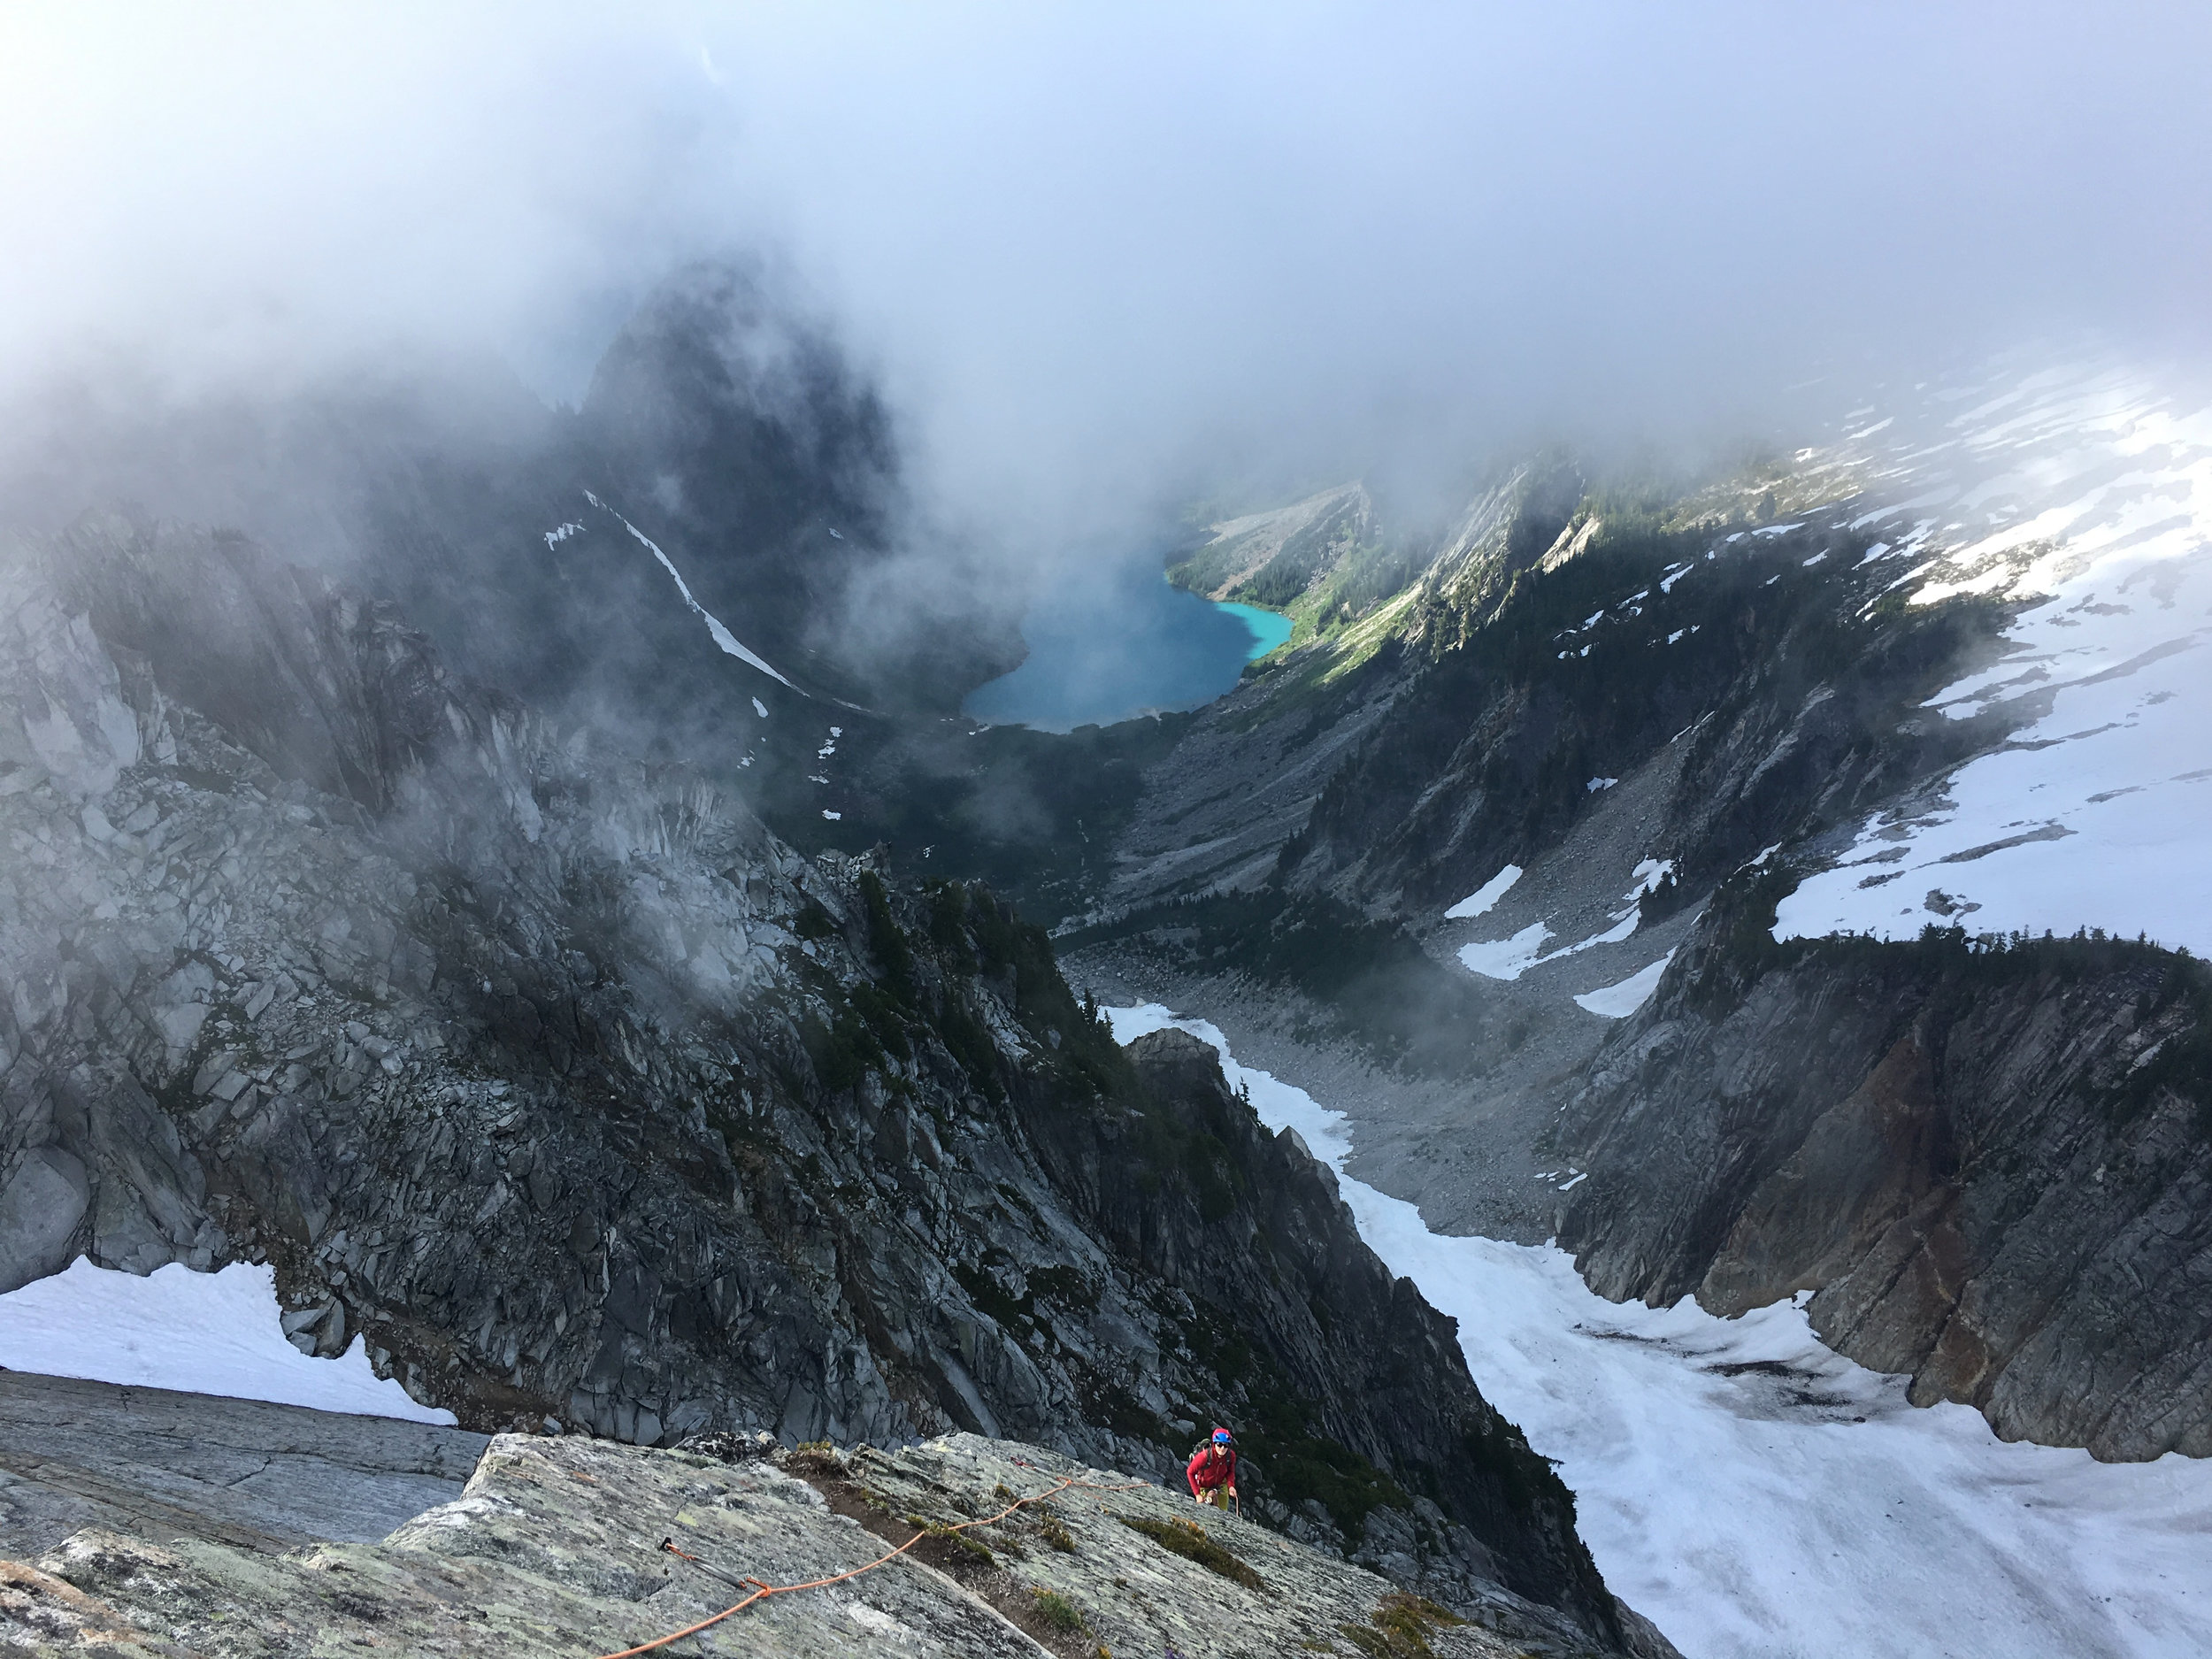 Looking down at the final belay as the clouds closed in on us again